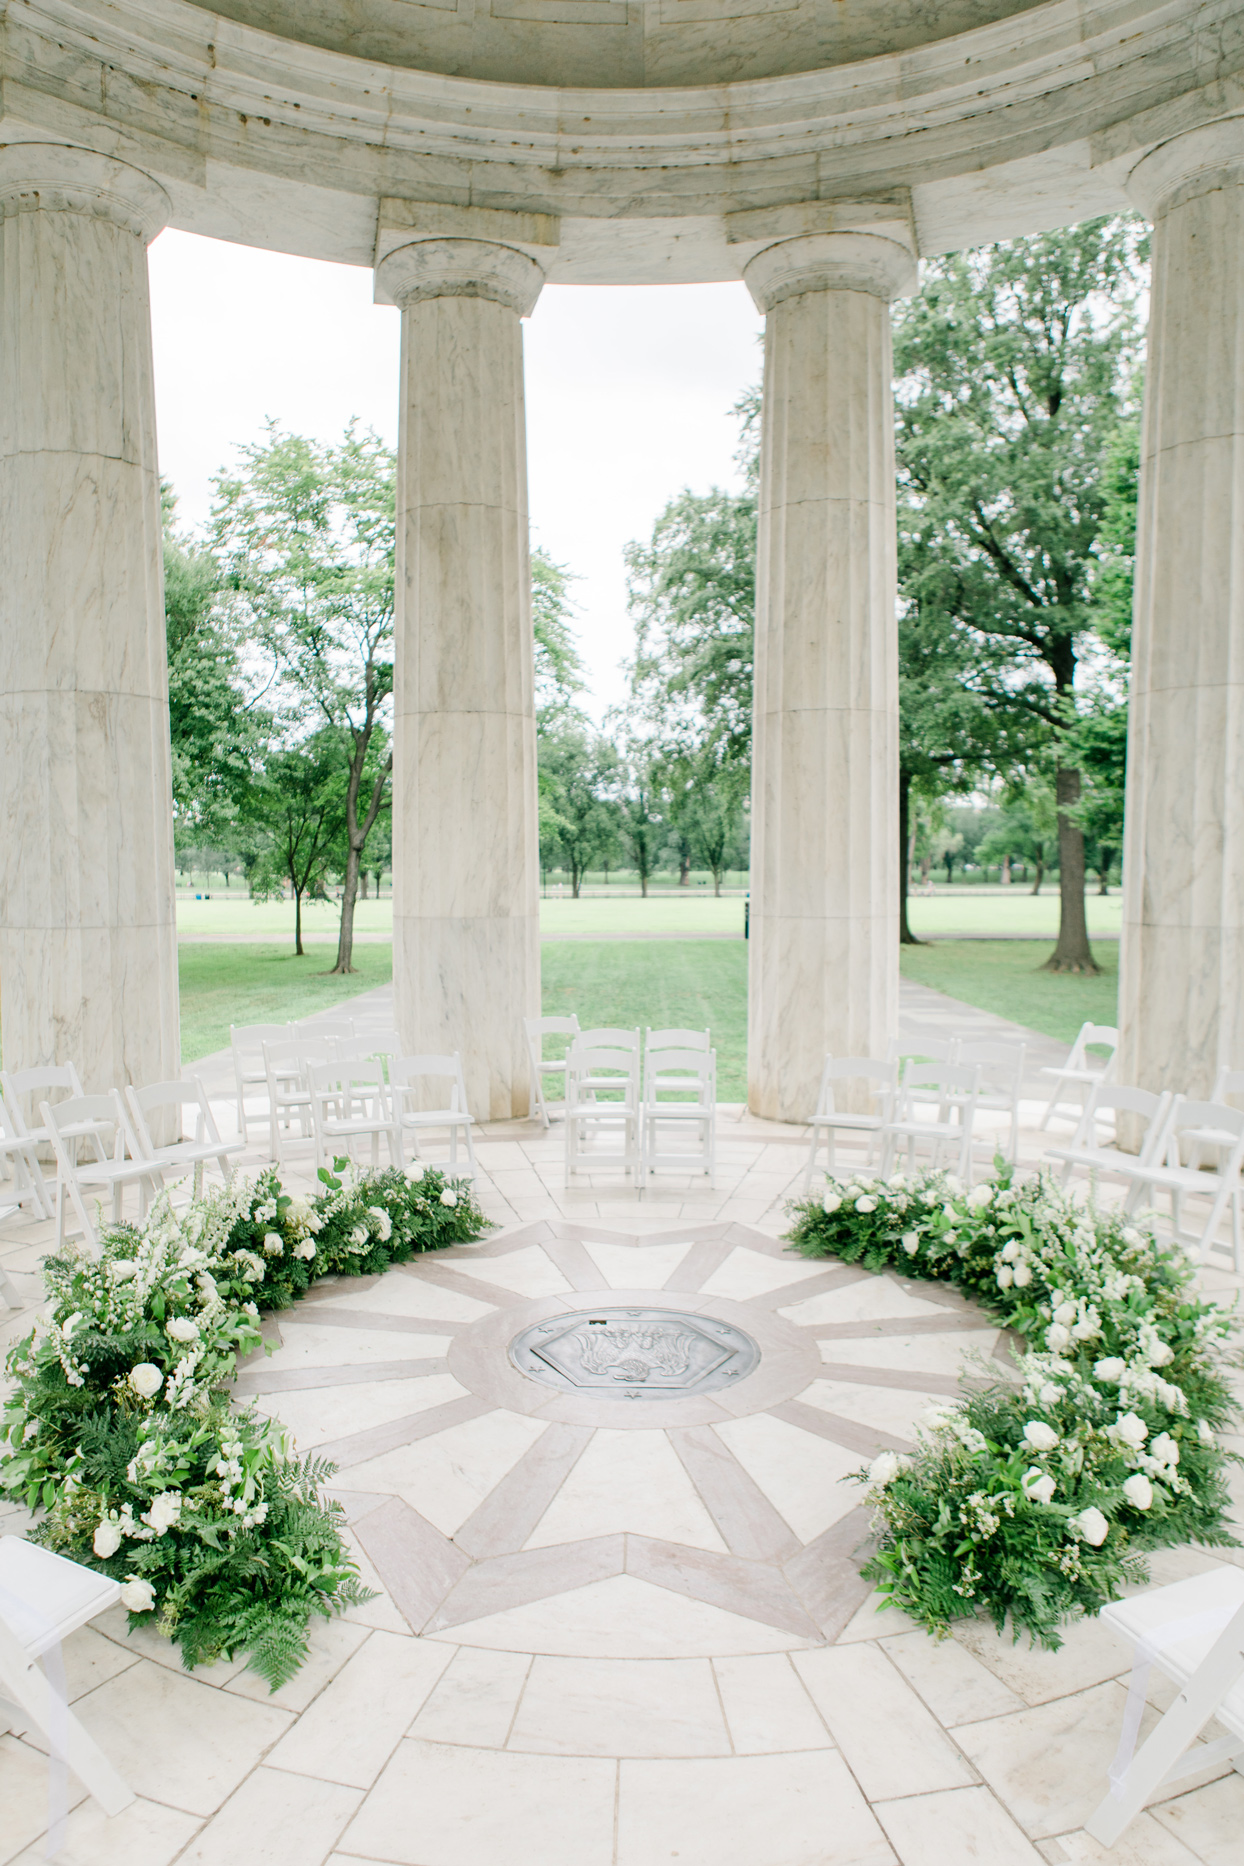 white chairs in semi-circle and greenery with white roses arranged at dc war memorial